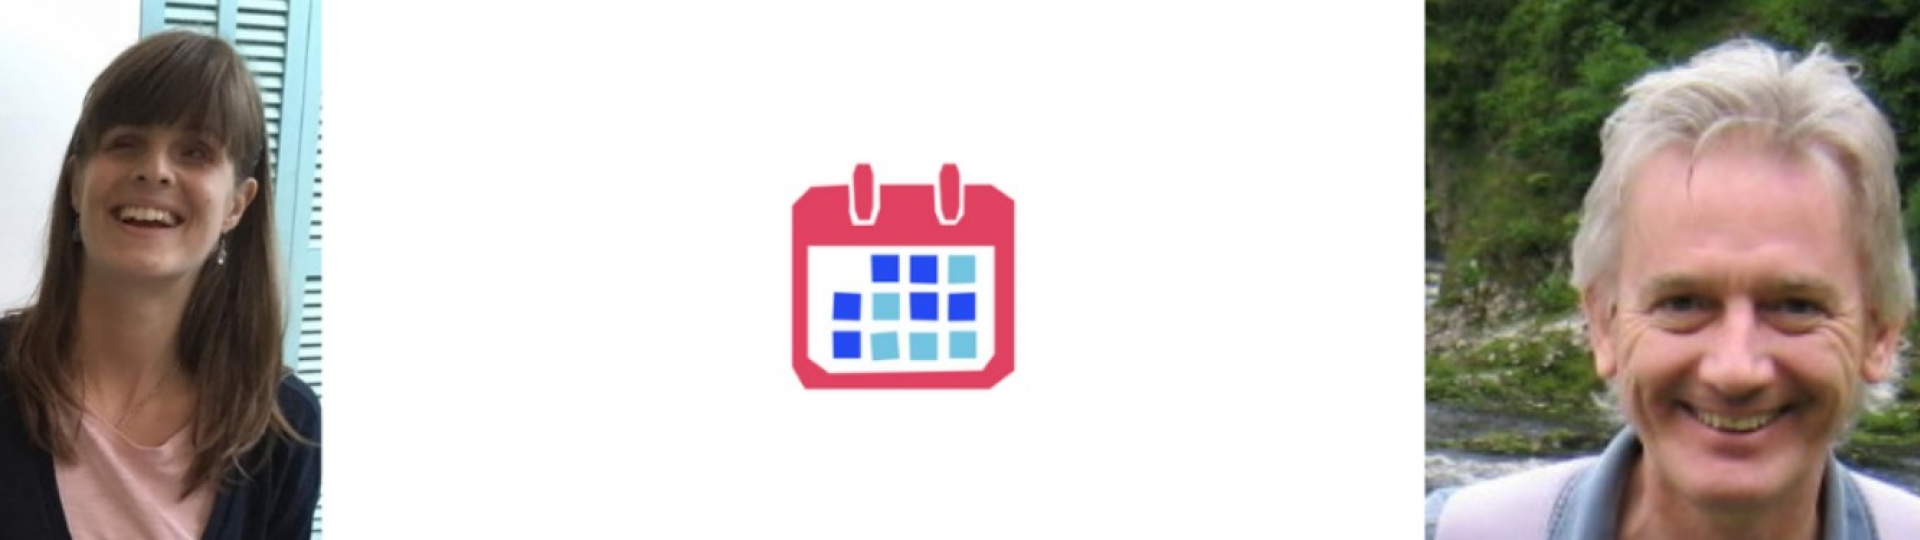 Two people and a calendar icon